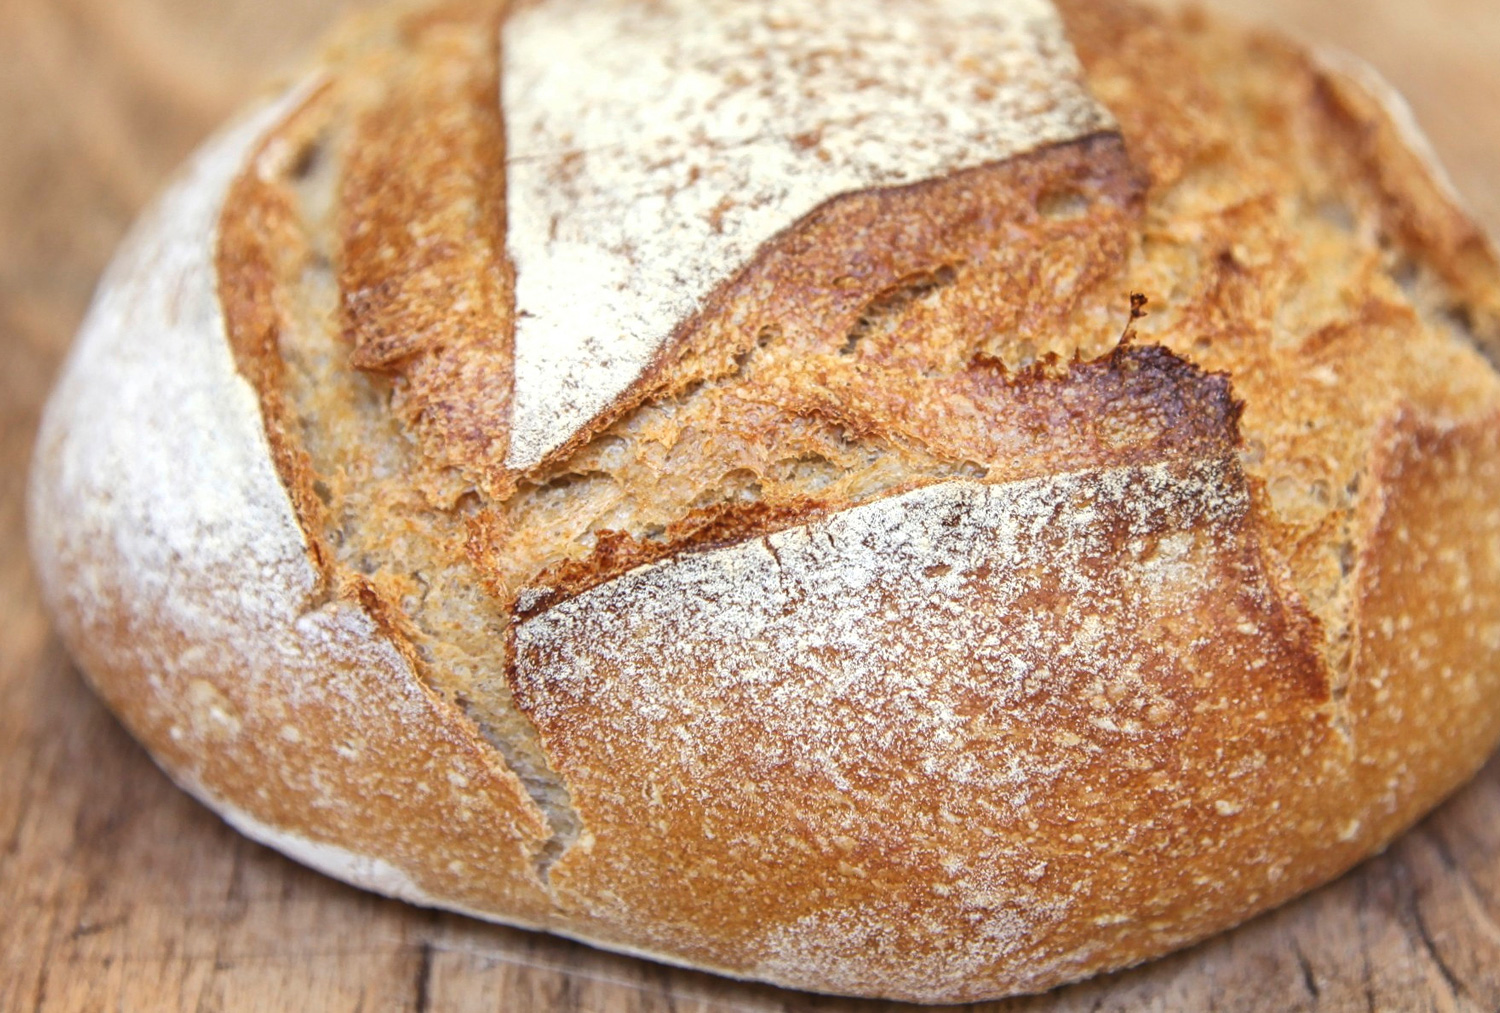 boulangerie-jade-products-breads7.jpg